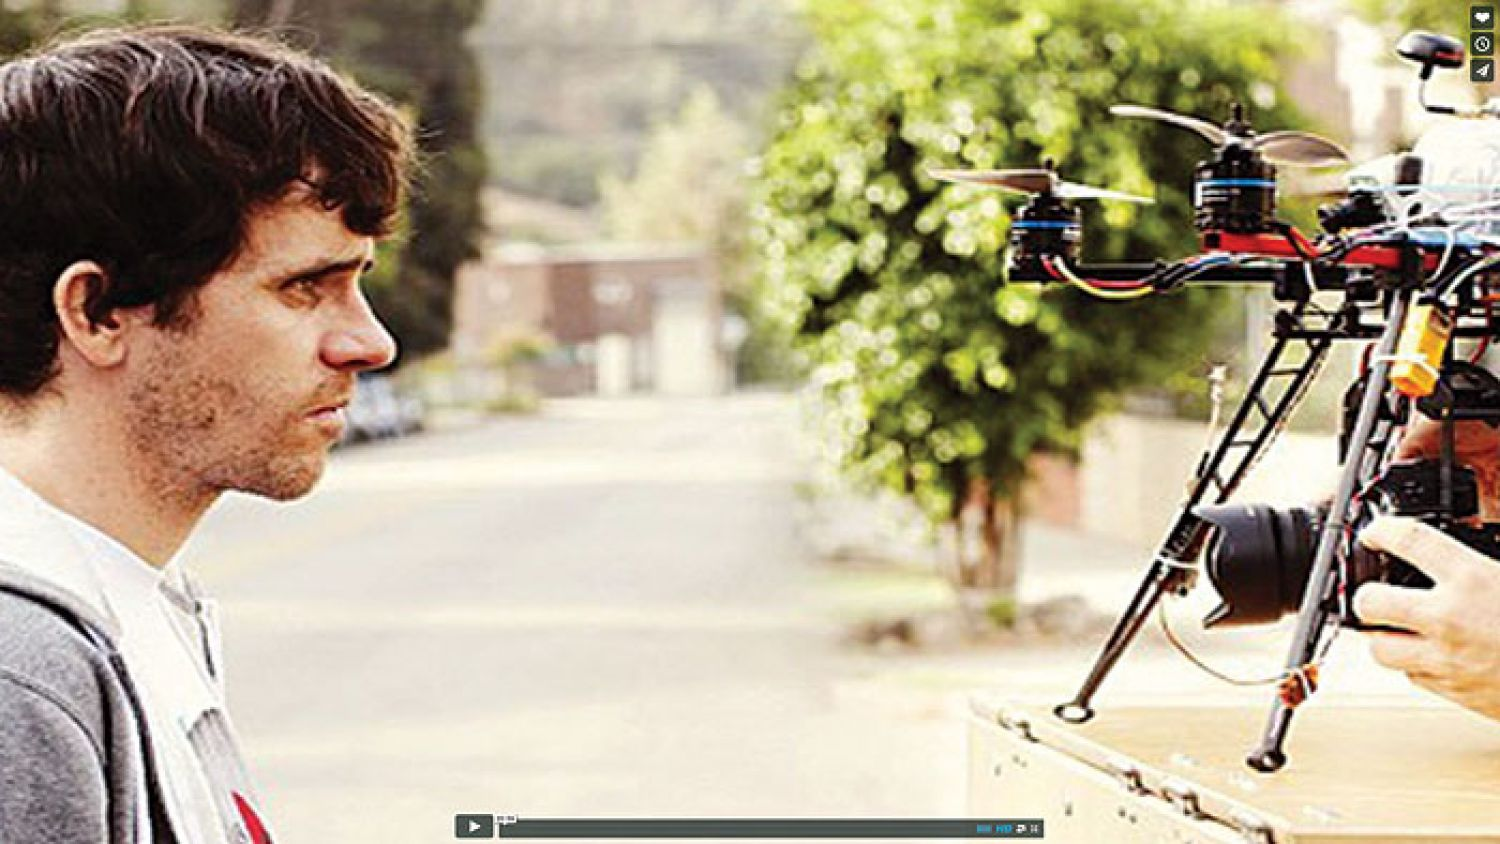 A behind-the-scenes screenshot from the Spike Jonze short, Pretty Sweet, which was shot in one take with a drone.